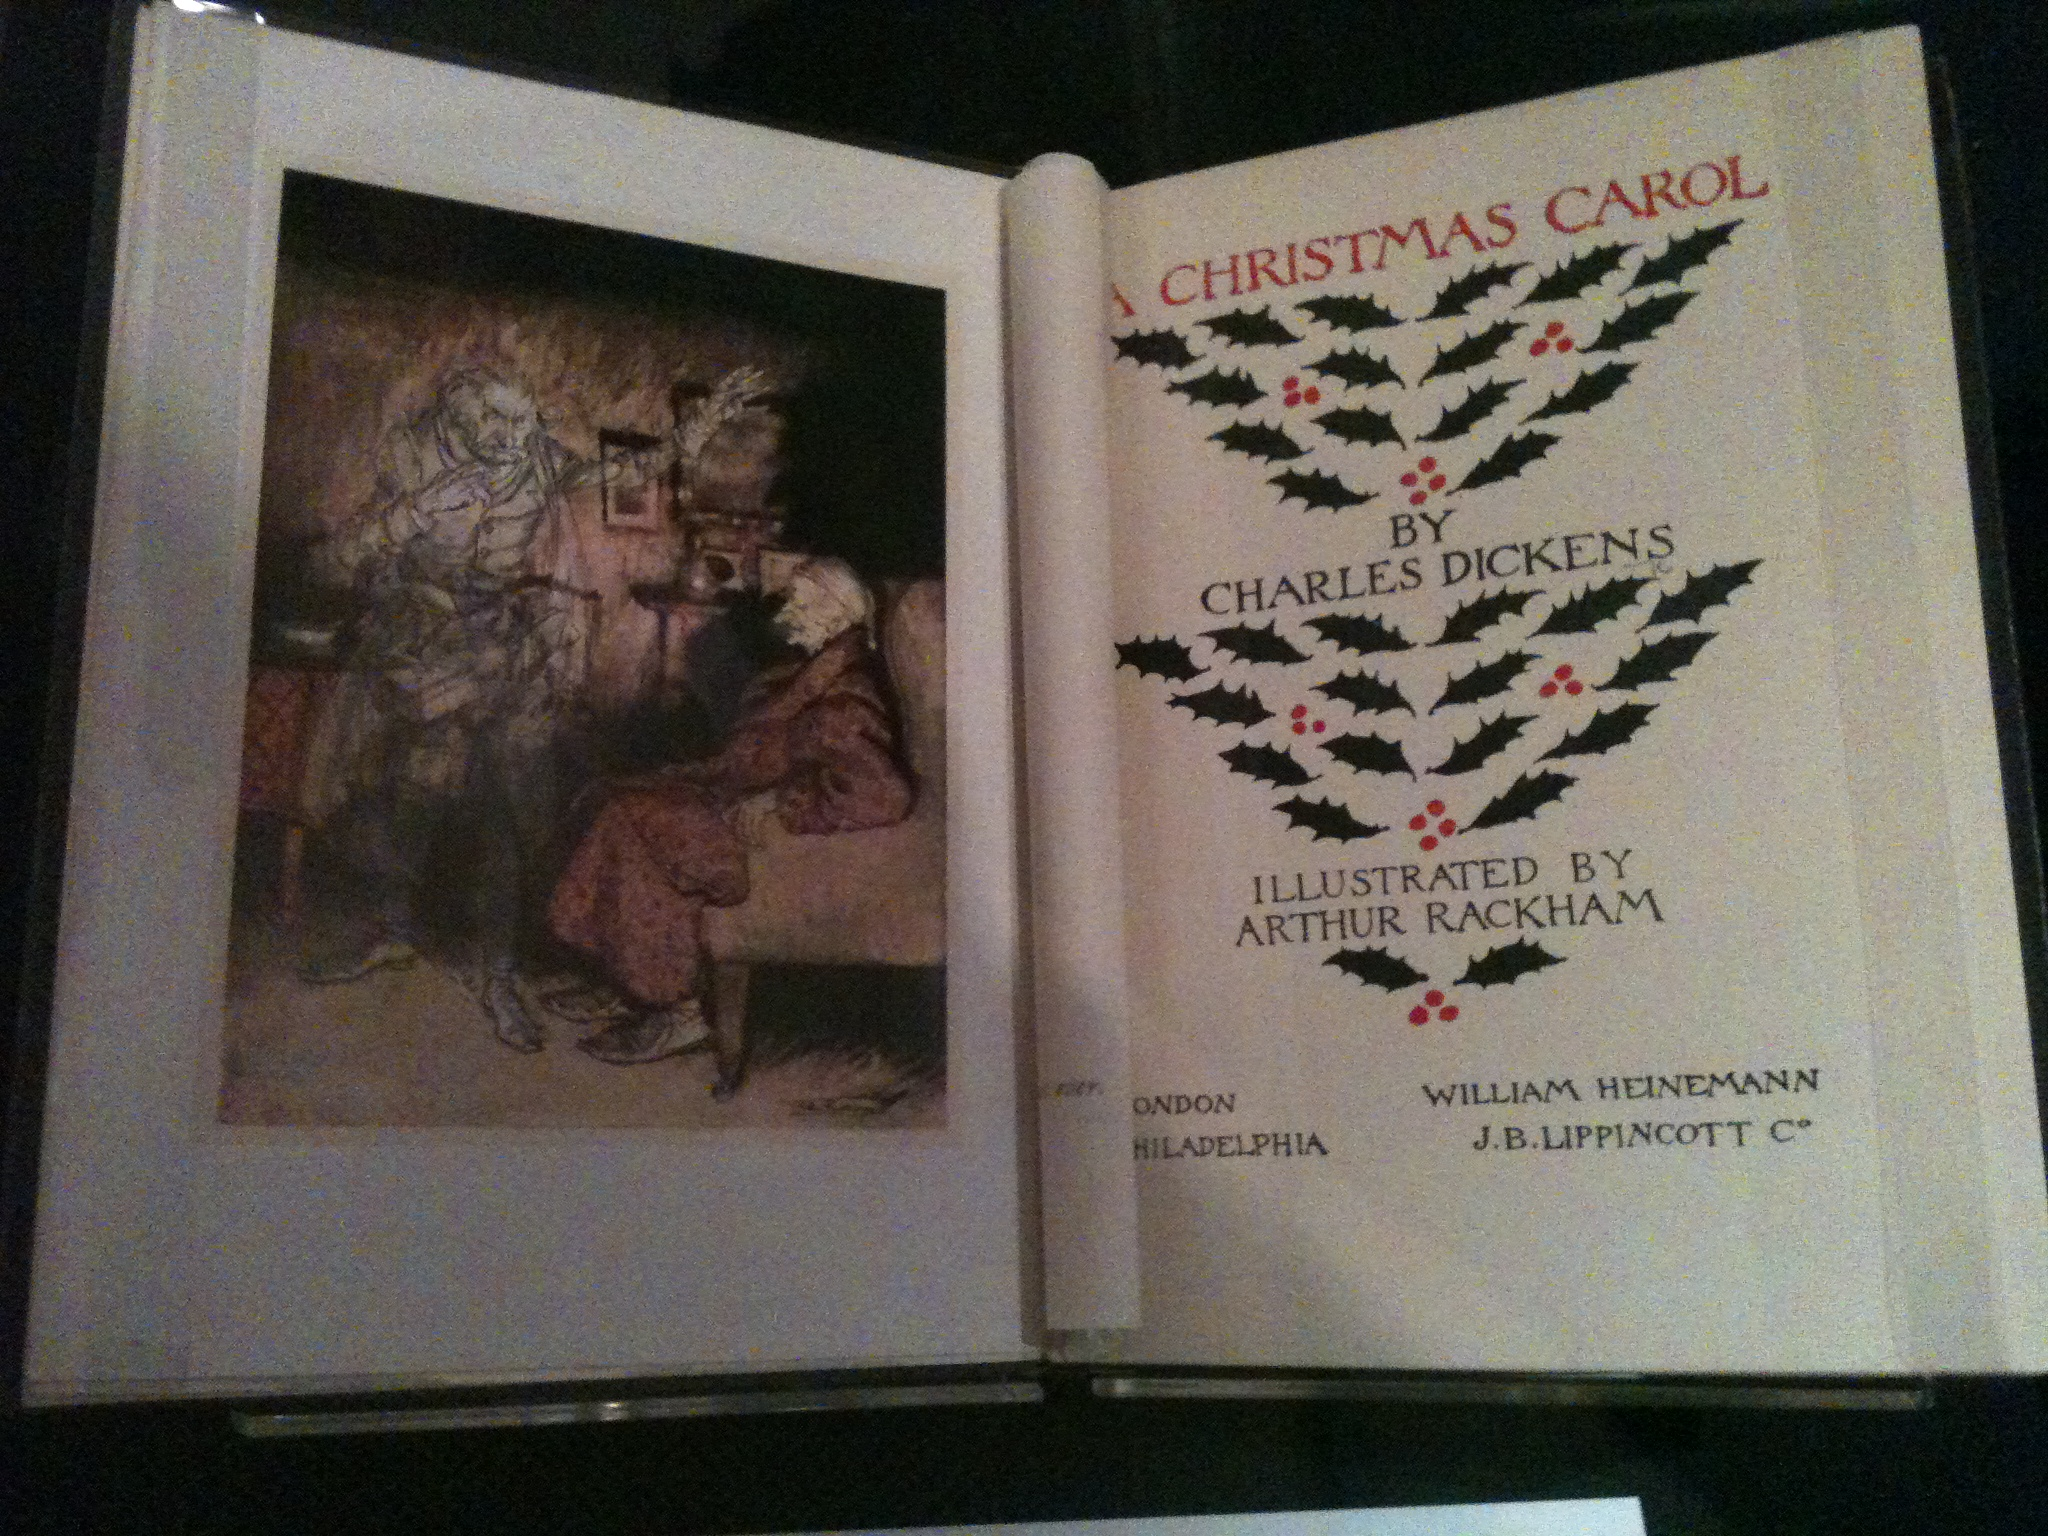 A Christmas Carol, illustrated by Arthur Rackham